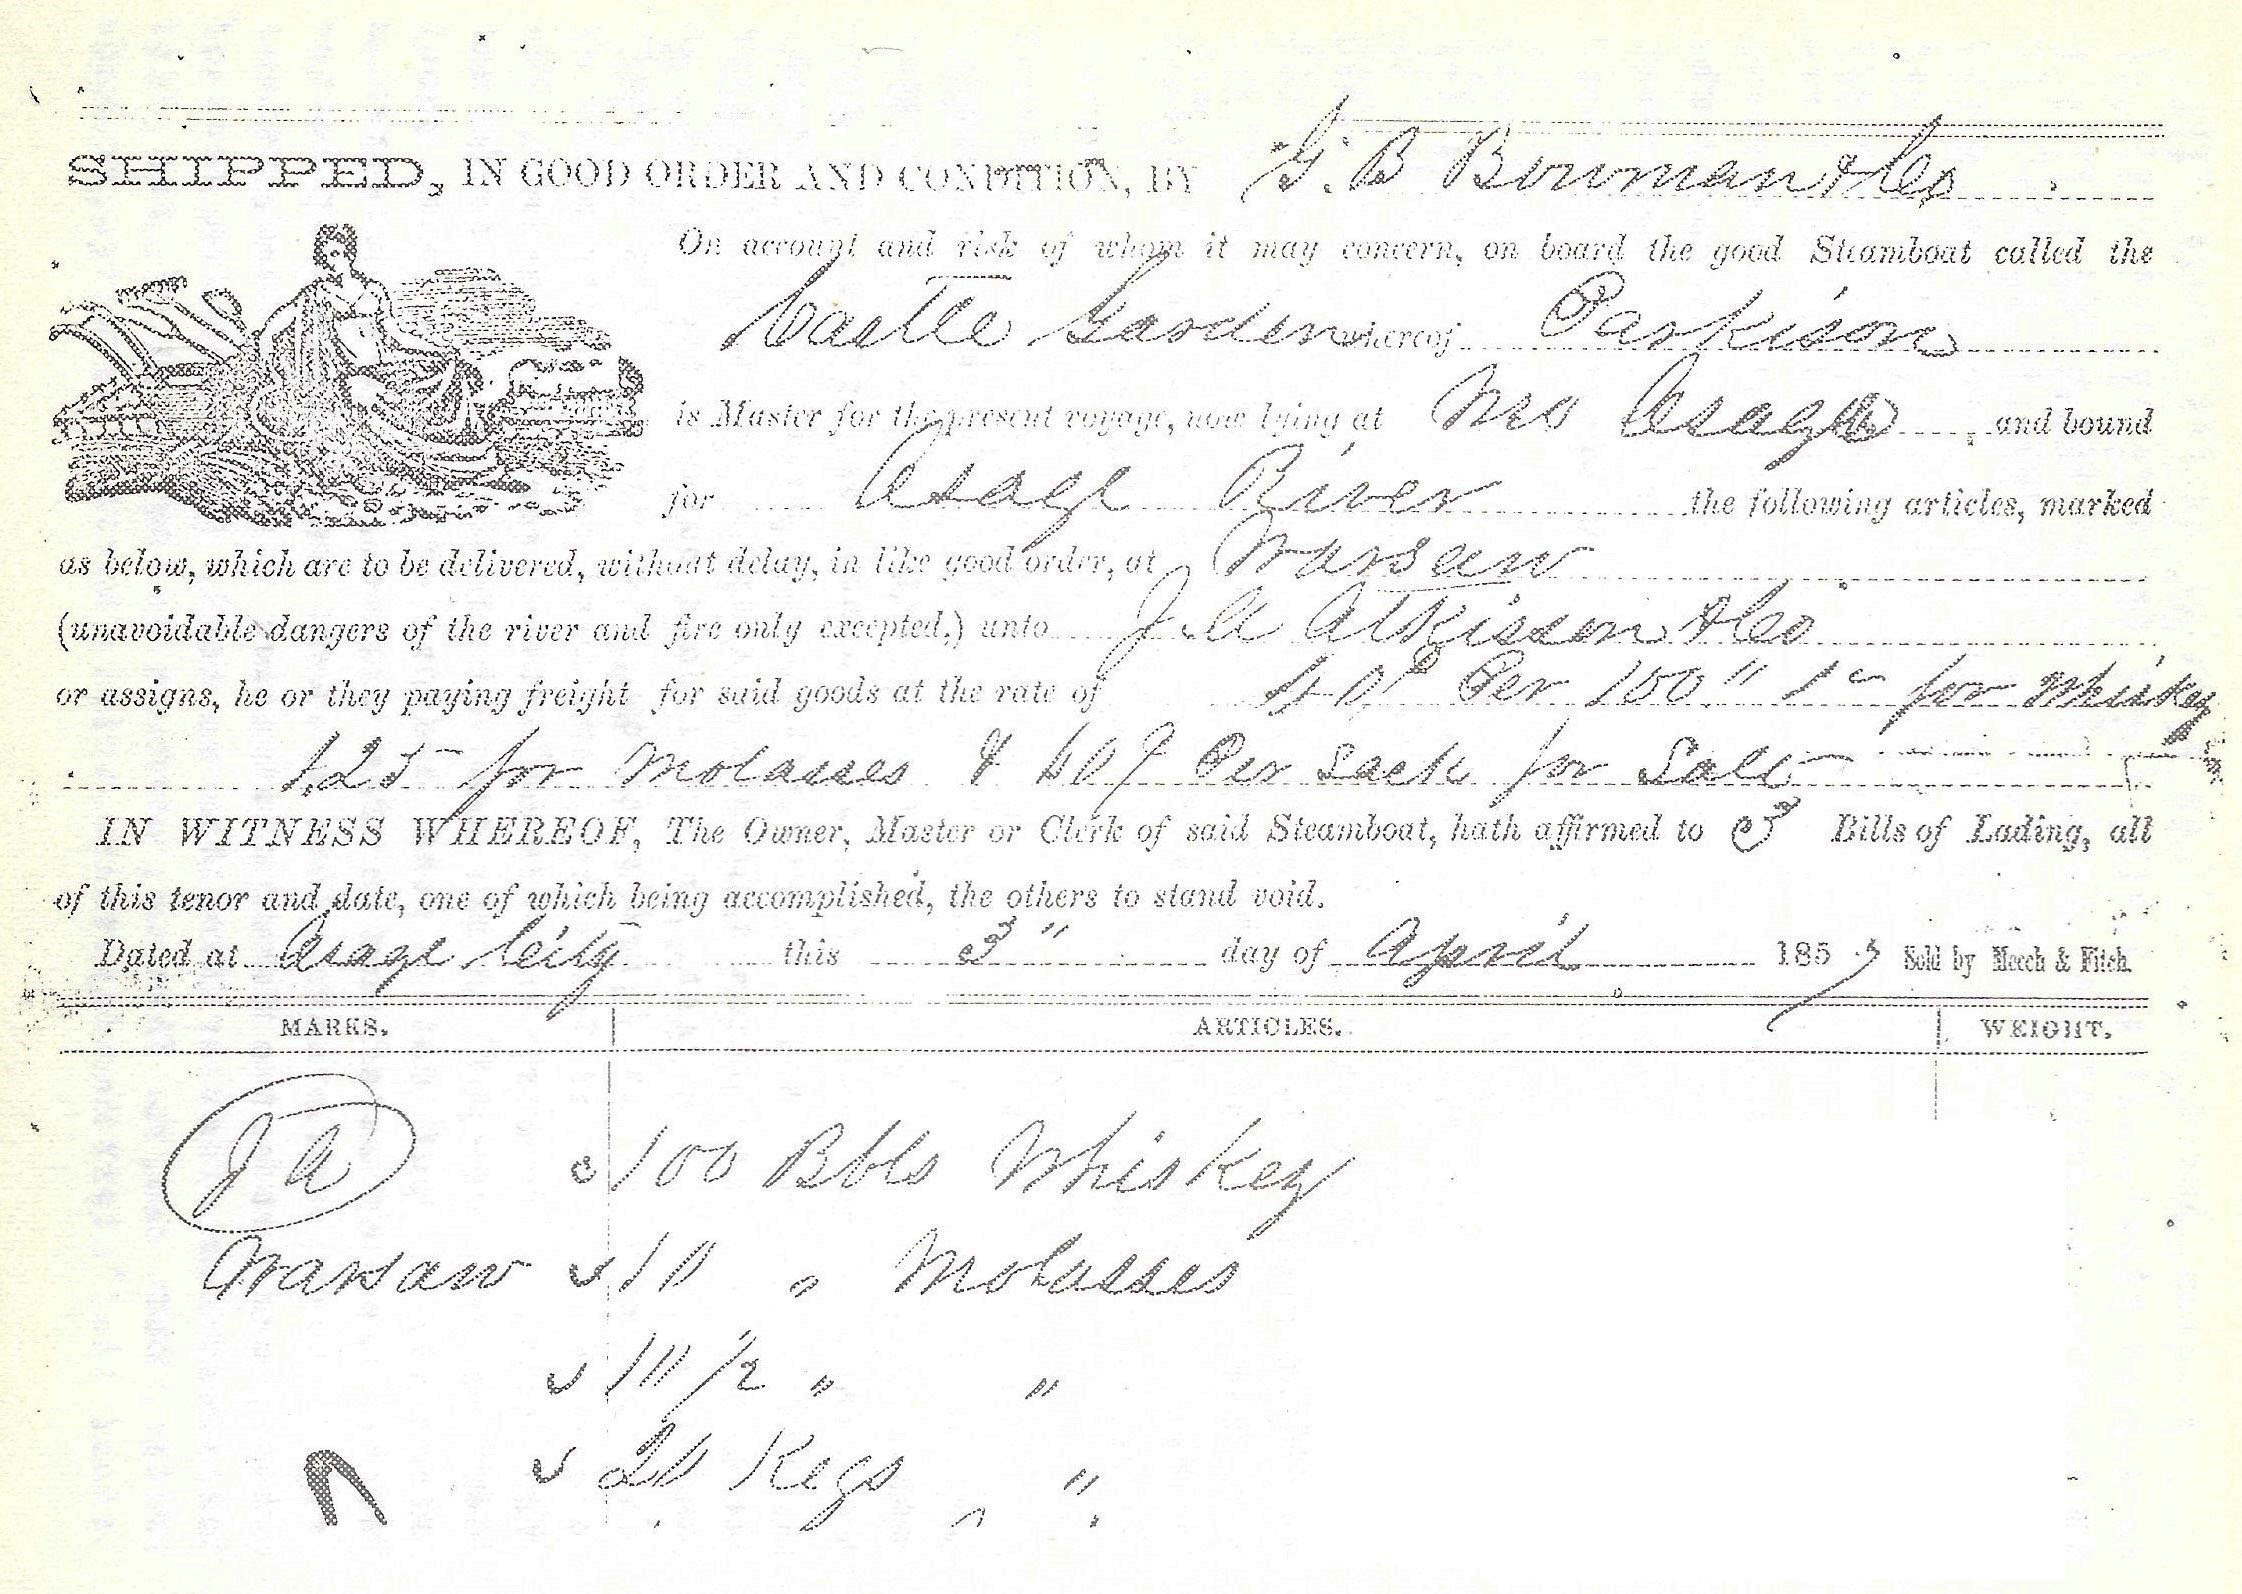 Judge Jenkins History Of Miller County Court Records Check Franklin Illinois Circuit A Portion One Bill Lading